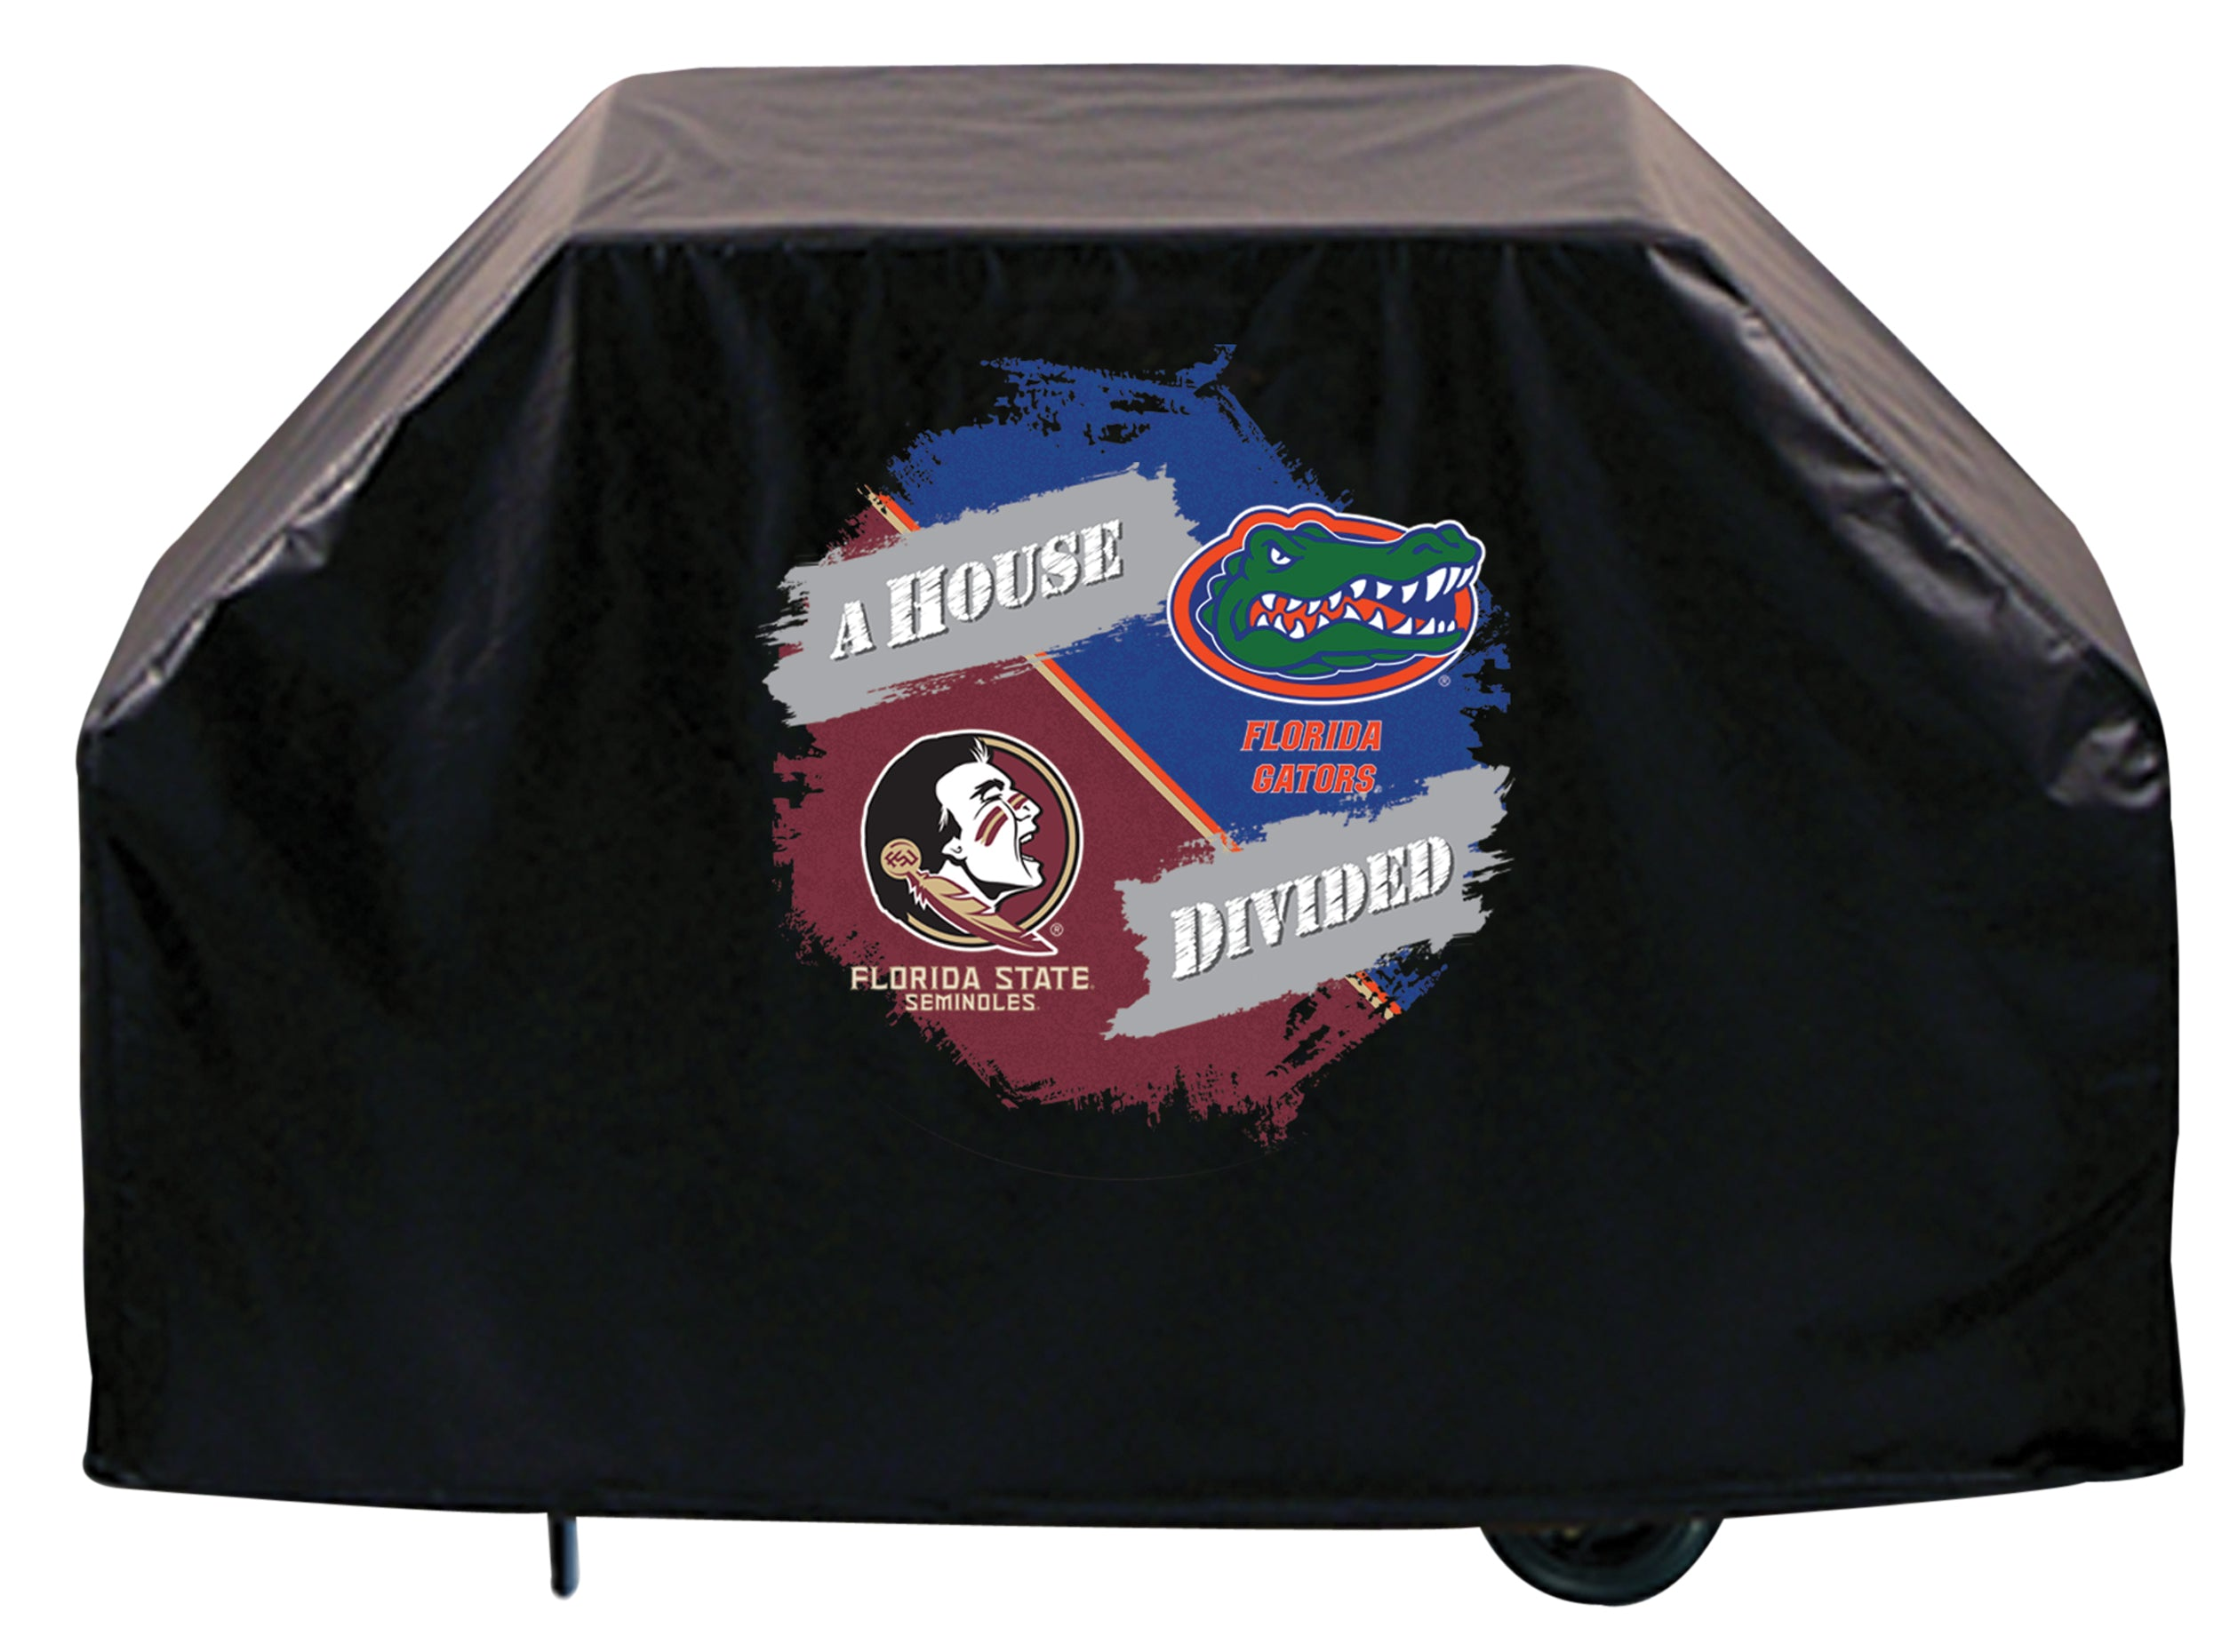 House Divided Bbq Grill Cover With Fsu Head And University Of Florida Grill Cover Store